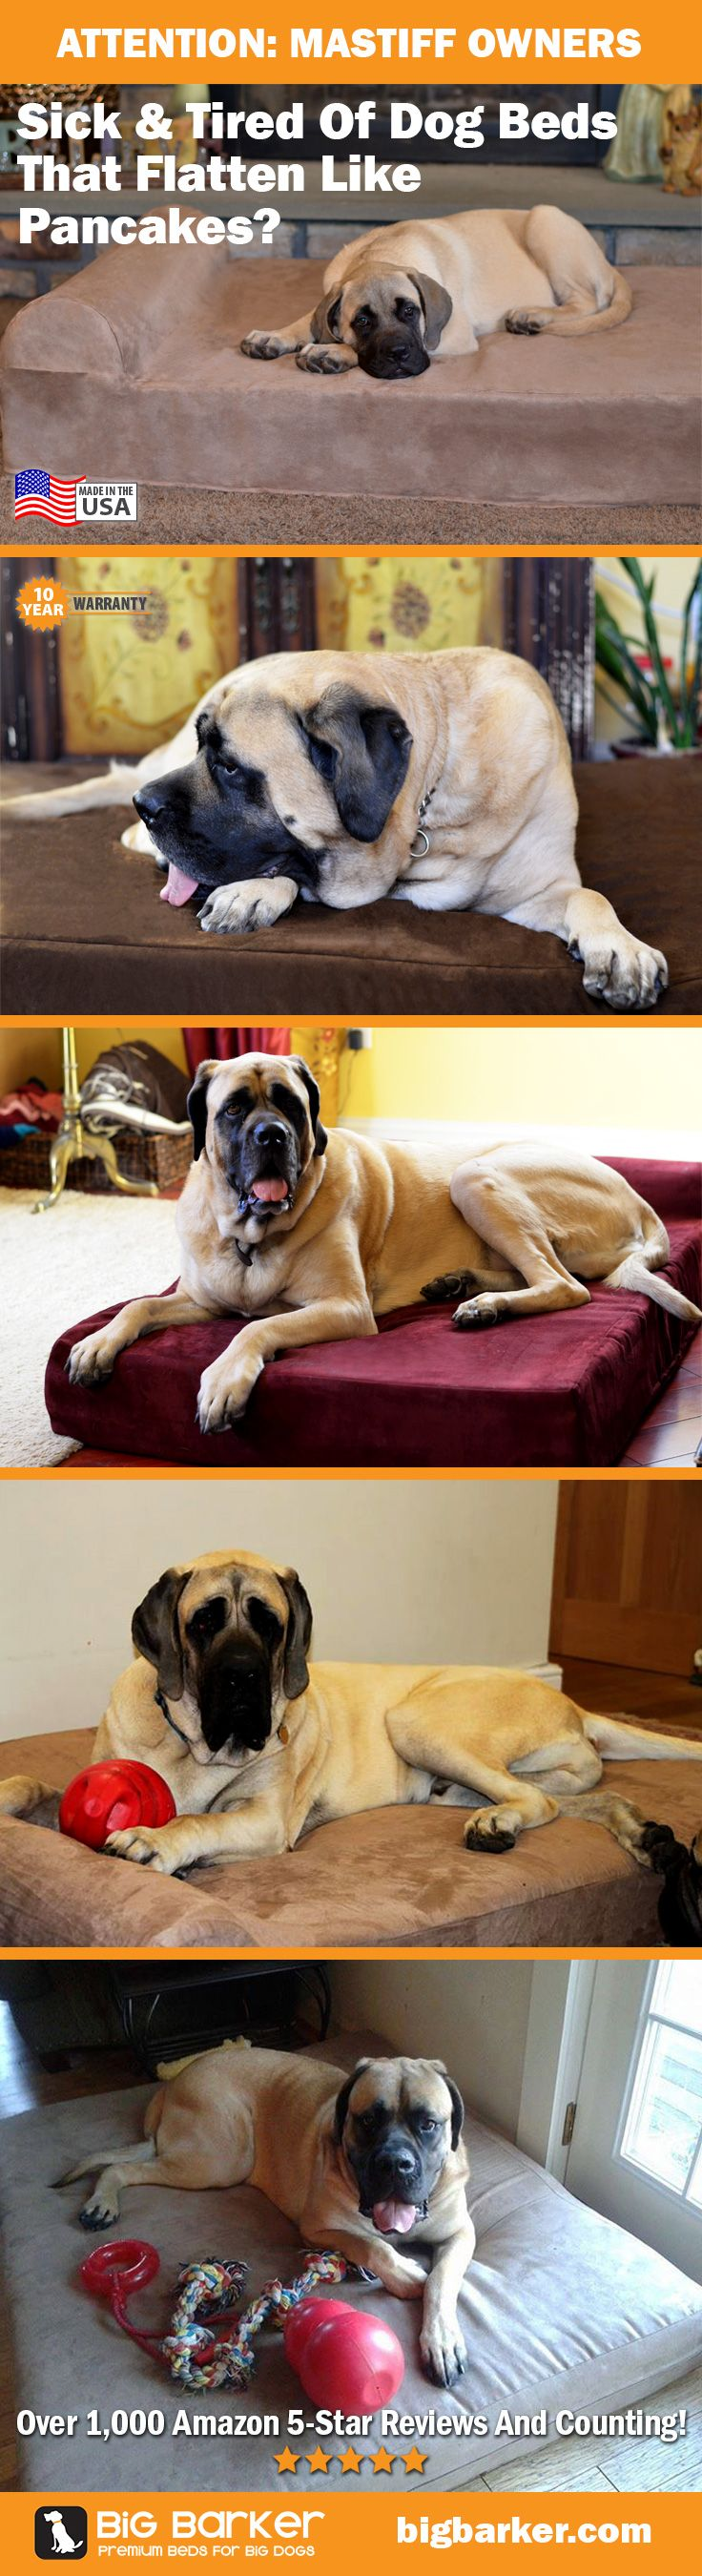 Mastiff Bed!  The mastiff bed in this image is a Big Barker, available at http://bigbarker.com - 10 year warranty, guaranteed not to flatten.